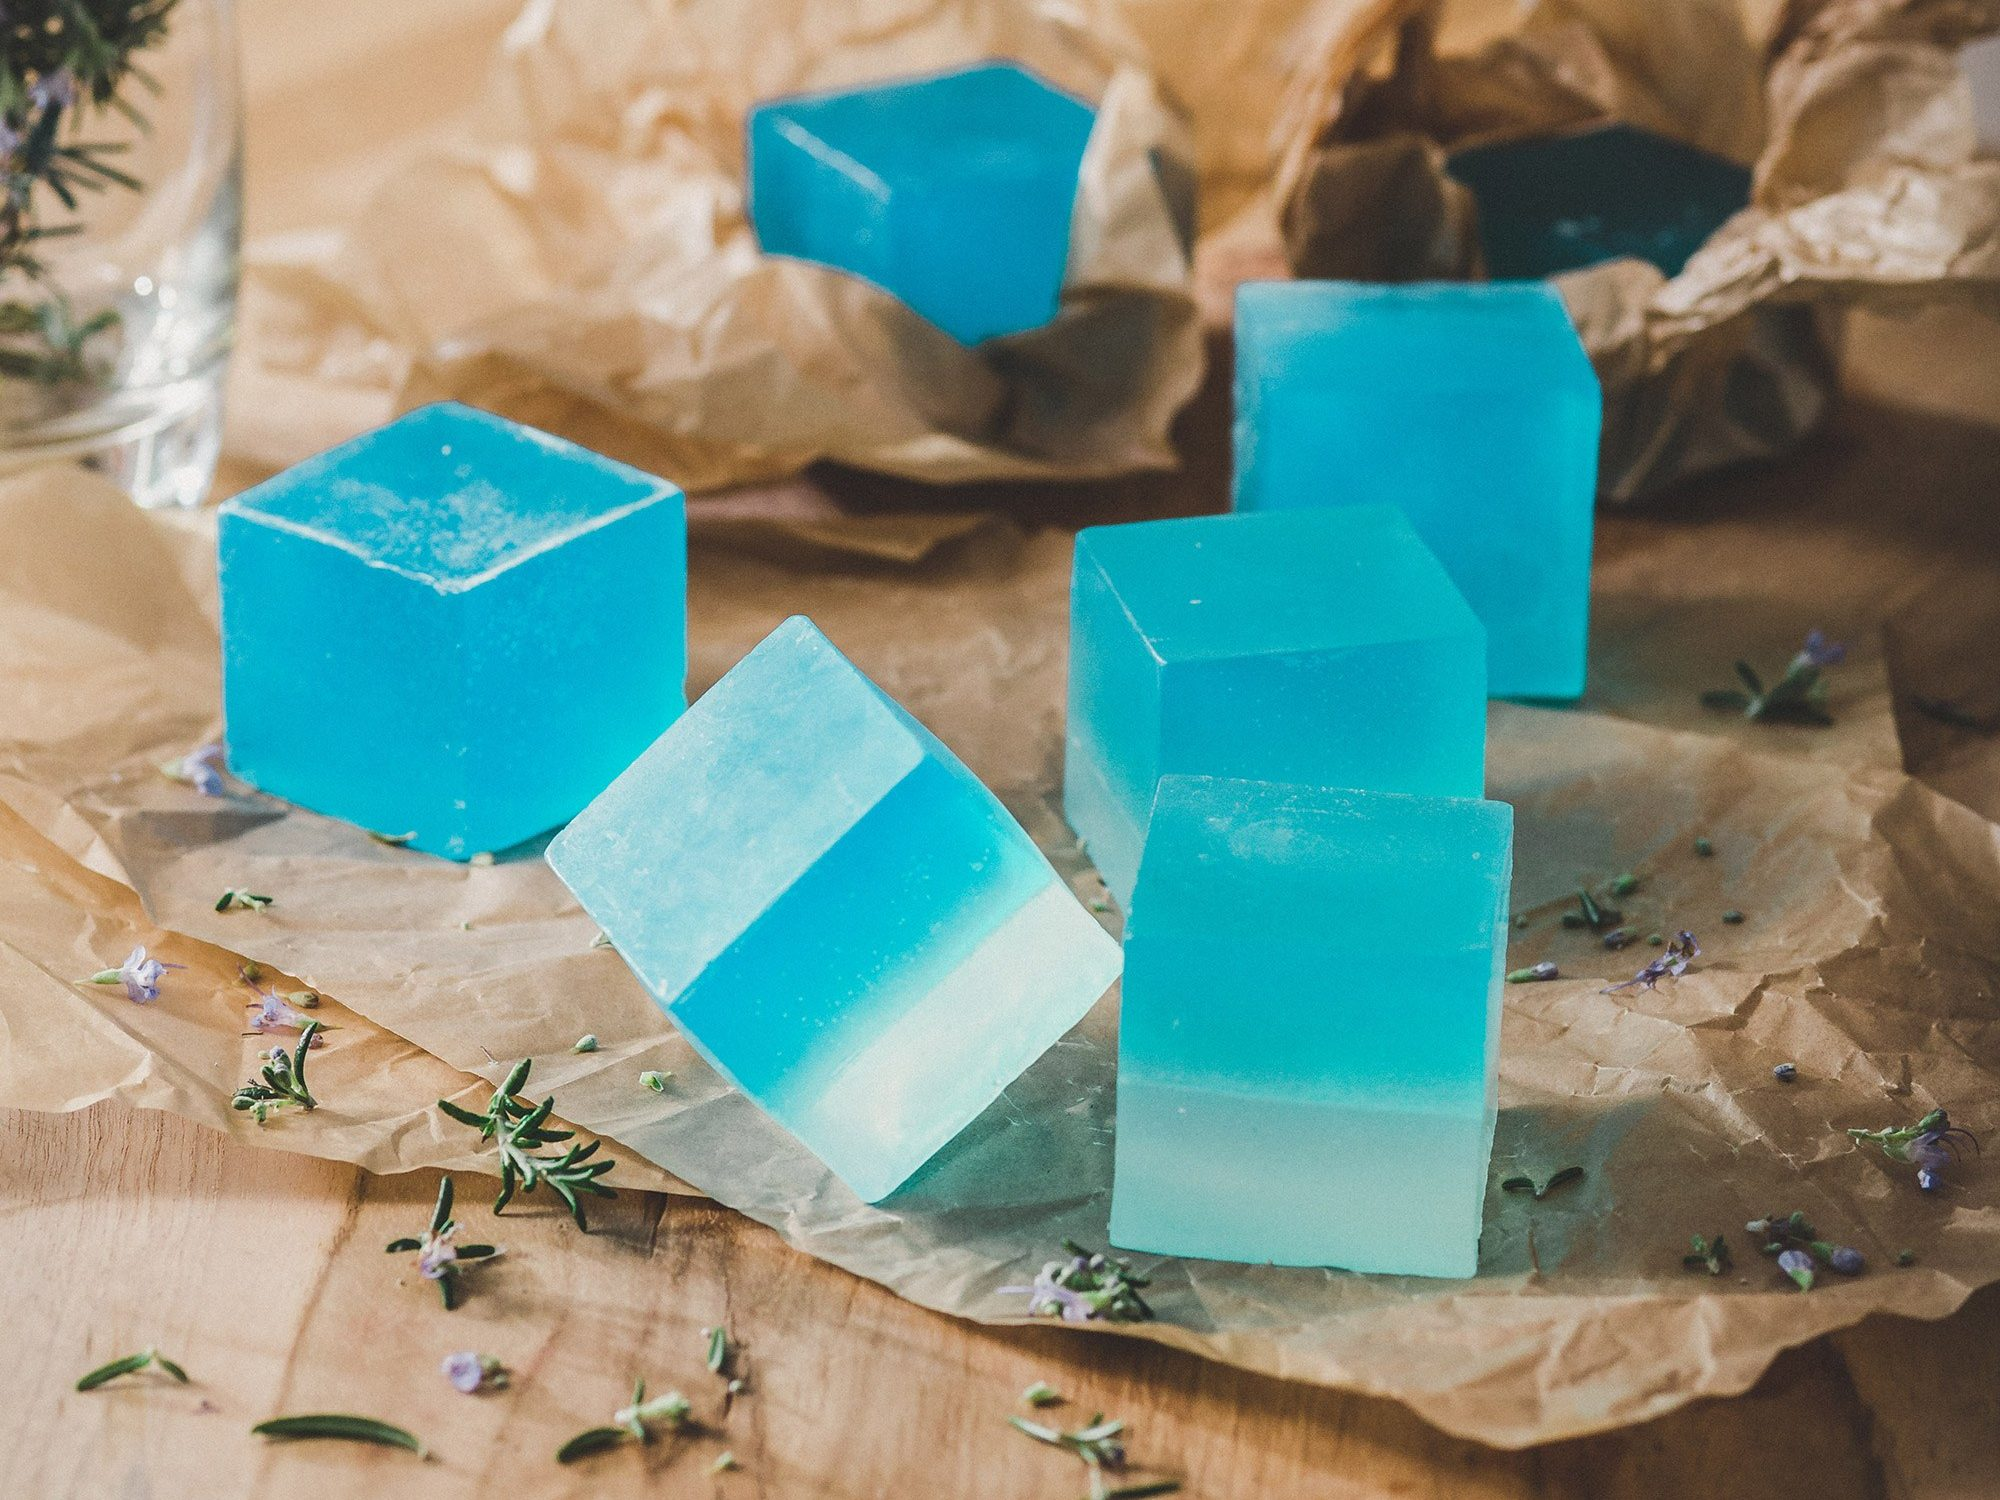 Blue cubes of homemade soap in brown tissue paper.